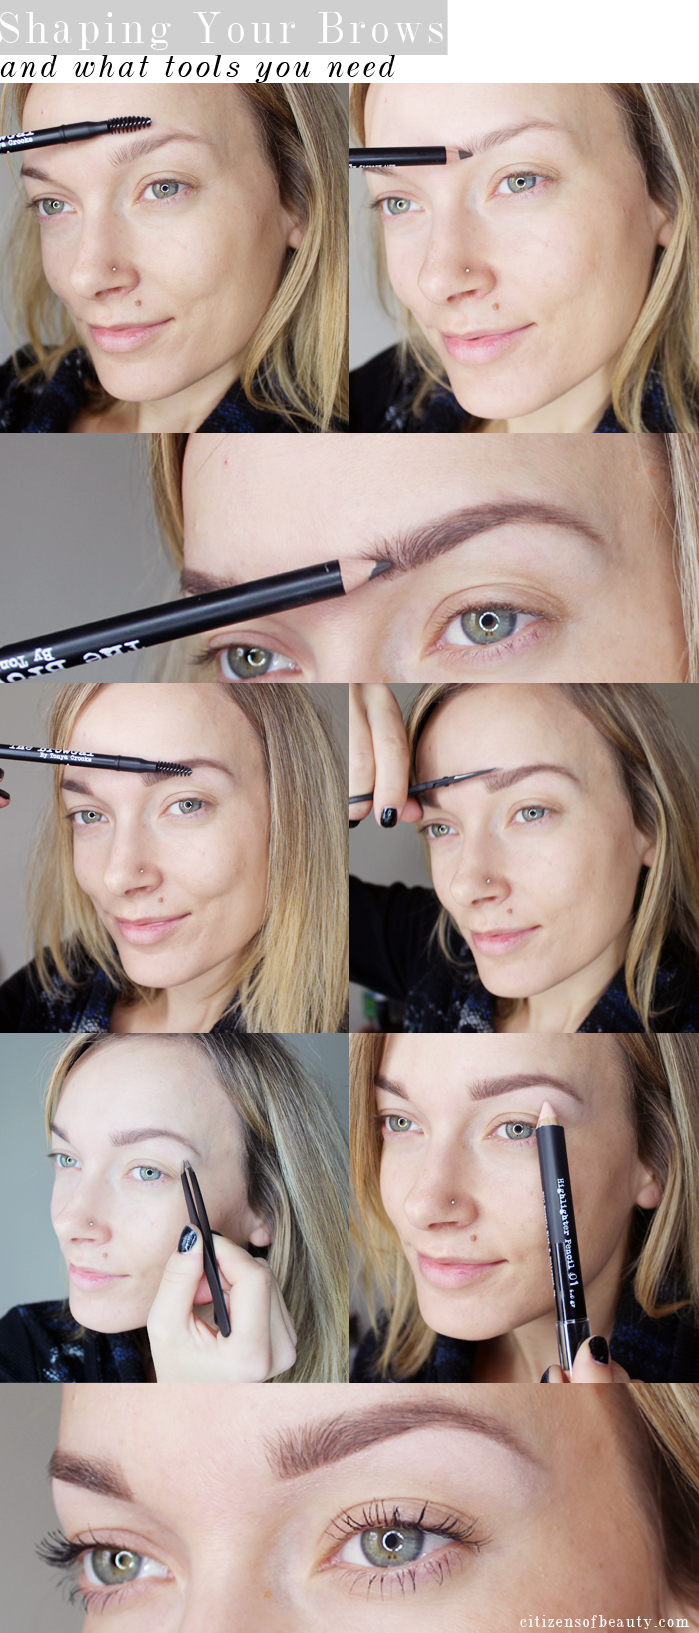 How To Shape Your Eyebrows And What Tools You Need Citizens Of Beauty